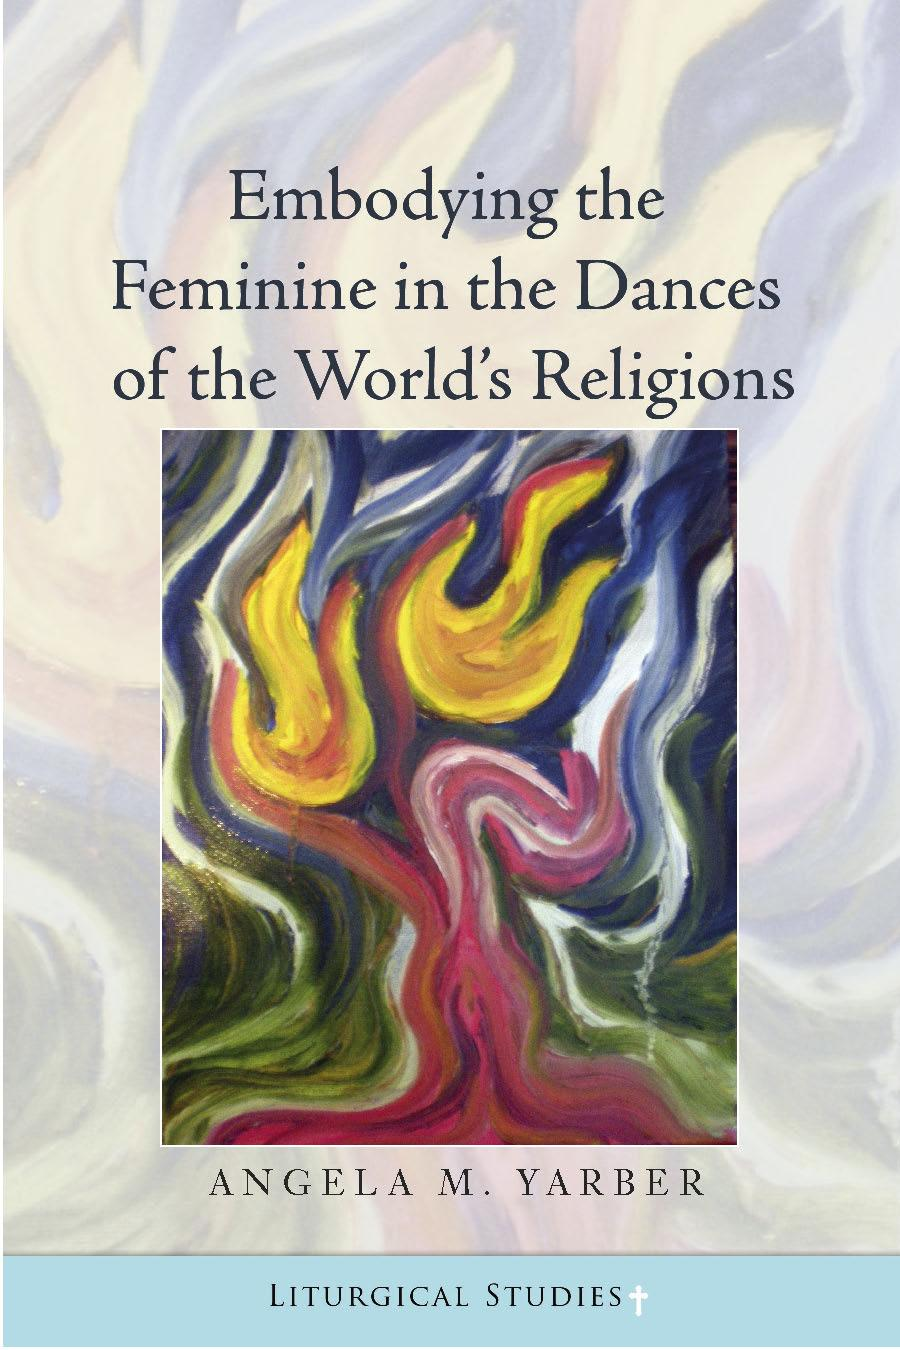 Embodying the Feminine in the Dances of the World's Religions